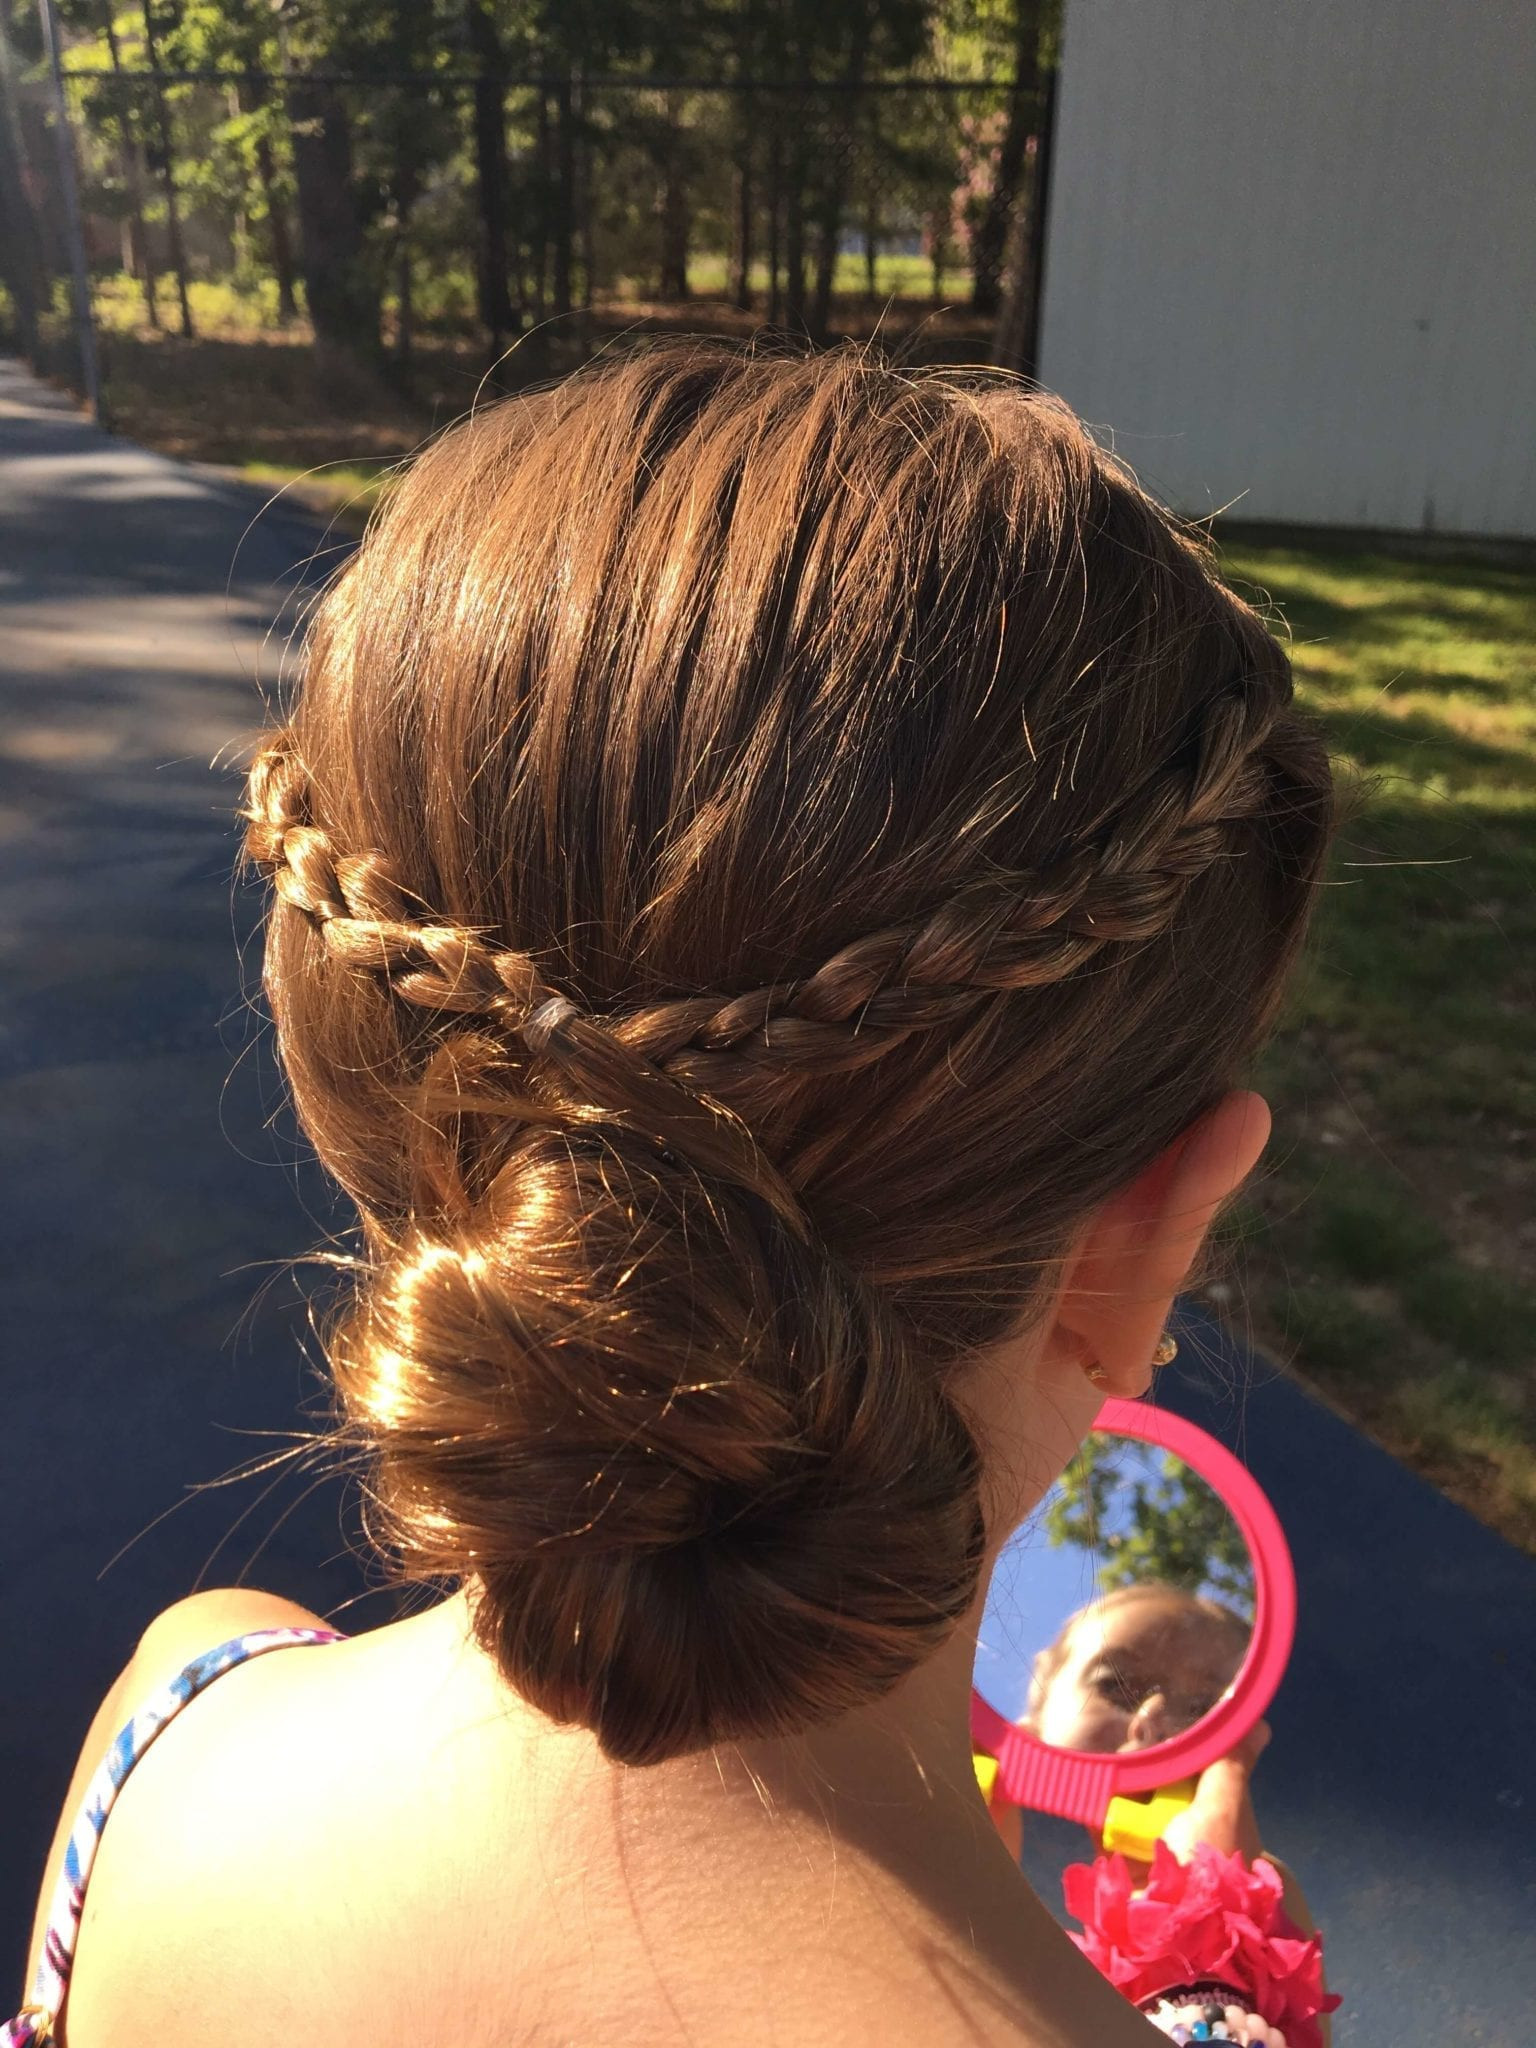 Best ideas about School Girls Hairstyle . Save or Pin Part 16 Now.